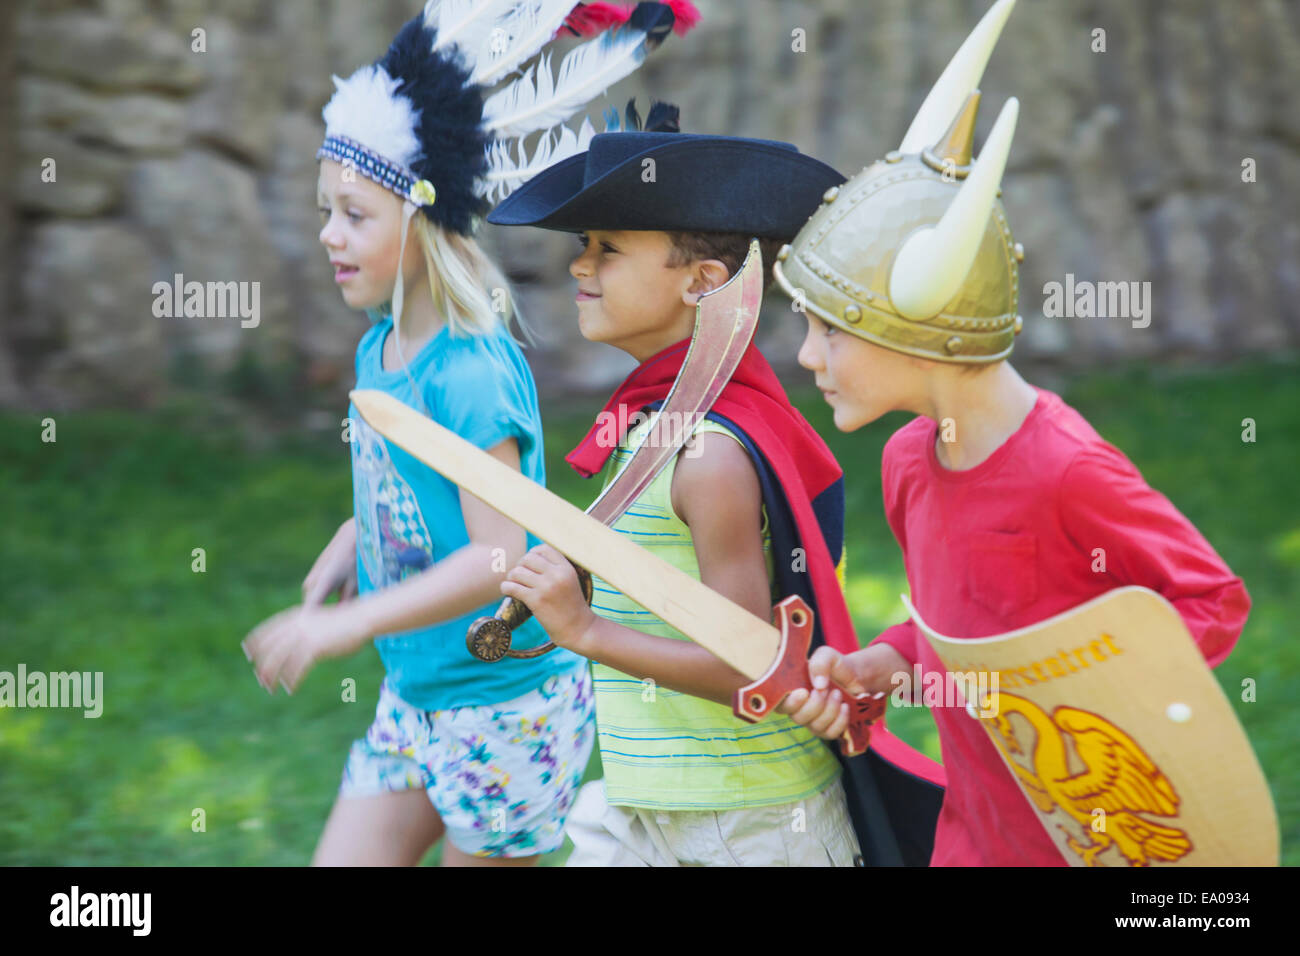 Three children wearing fancy dress costumes, playing in park - Stock Image